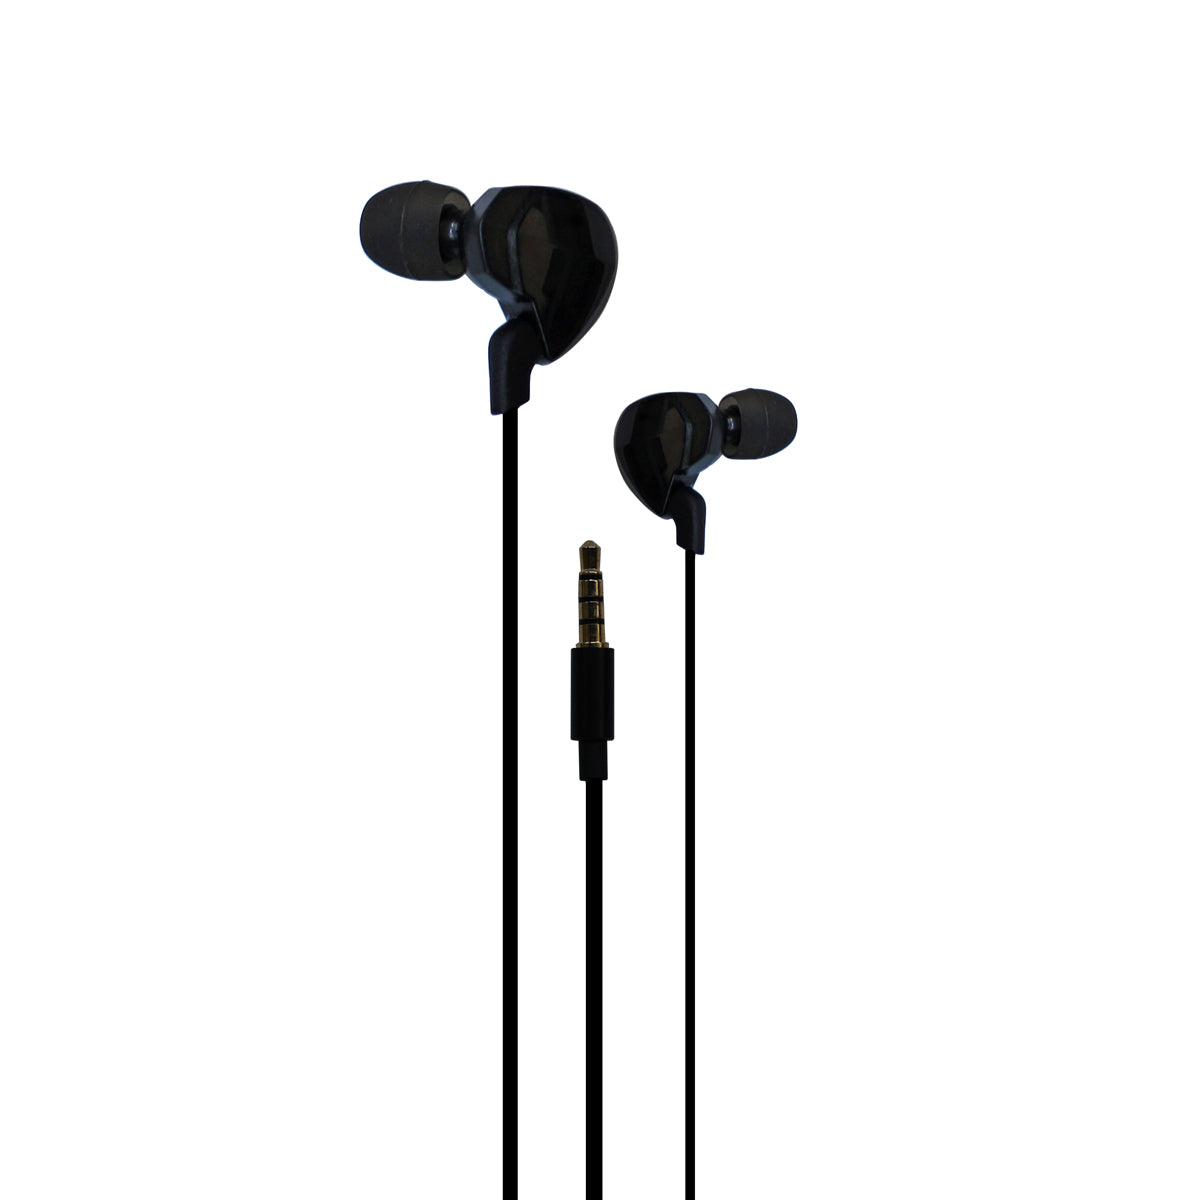 Hidizs EP-03 Hi-Fi Dynamic In-Ear Headphones